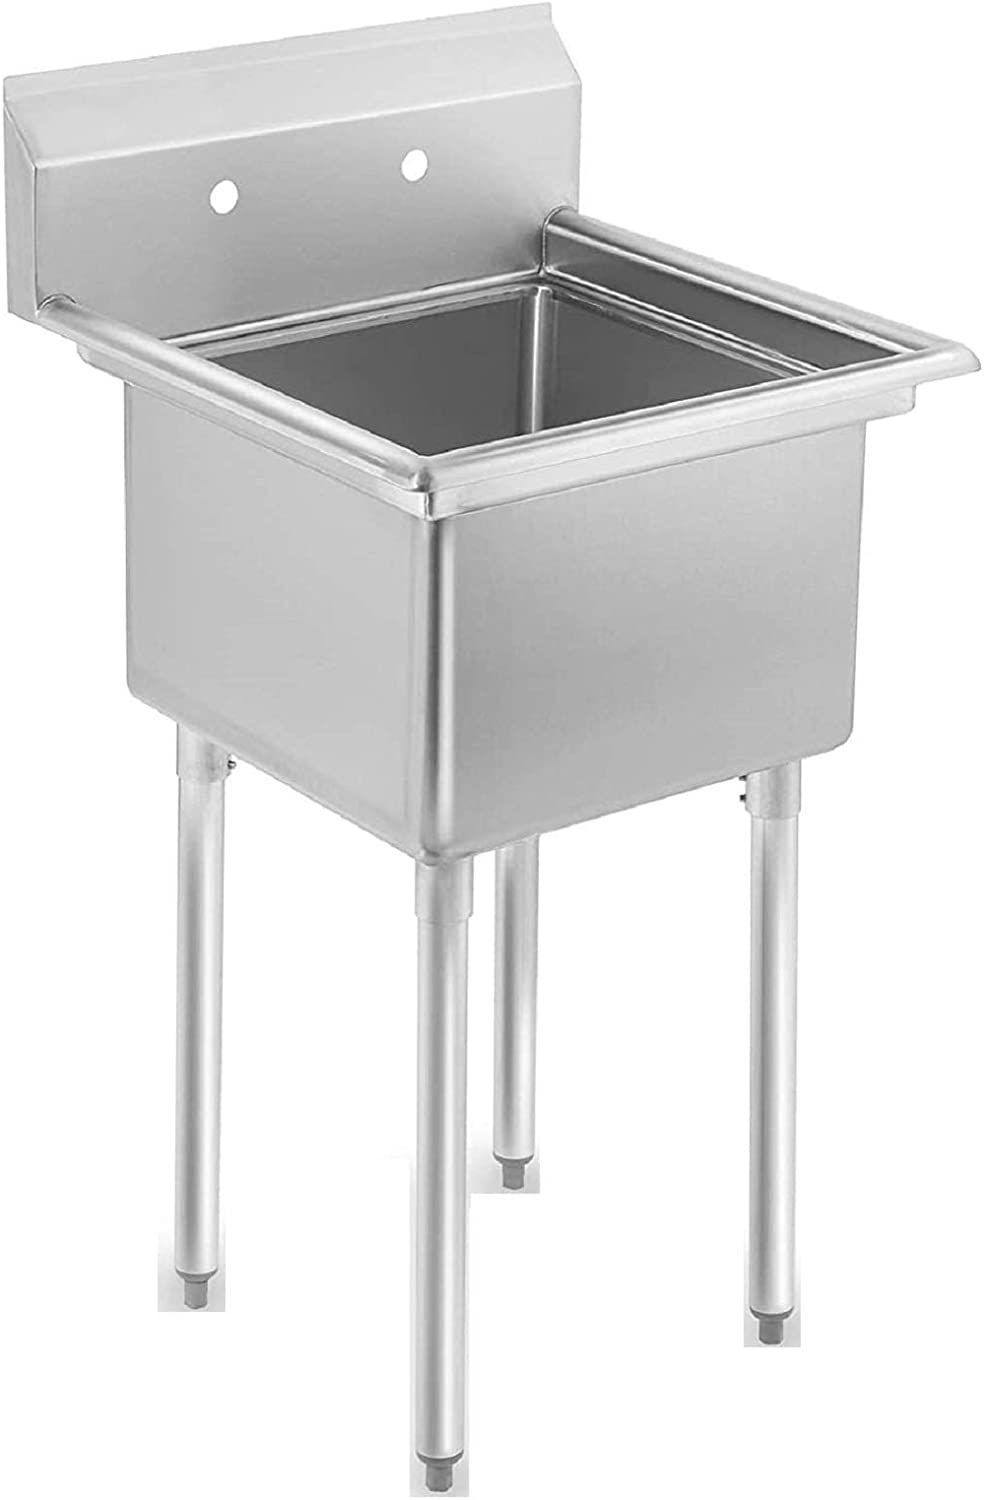 """1 Compartment Commercial Standing Stainless Steel Sink - For Kitchen Prep, Lundry, Backyard, Bar, Utility and more. Comes with 10"""" Faucet. NSF Certified."""